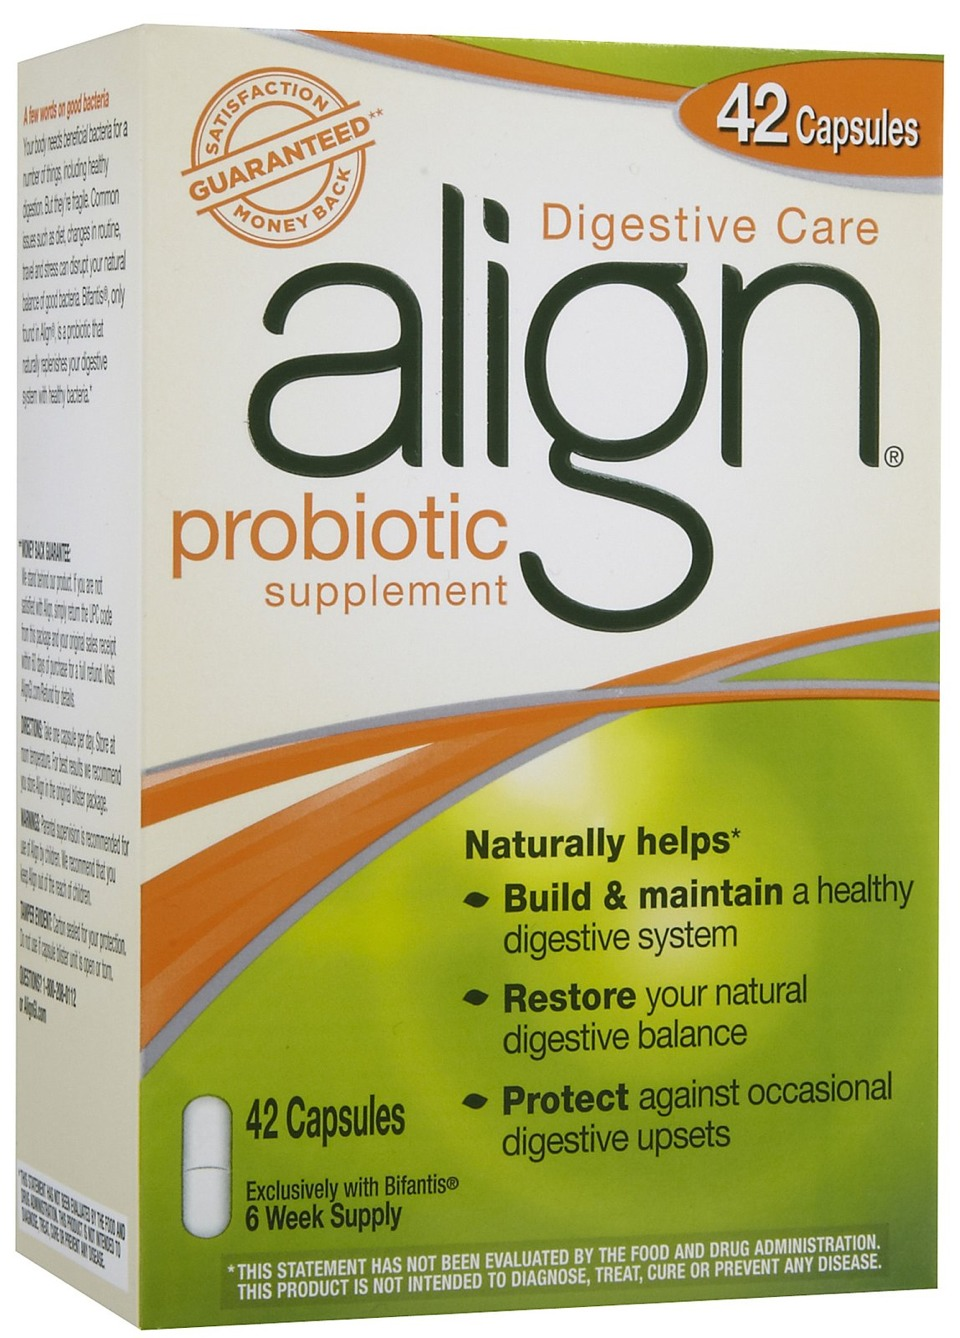 The second way is to take a probiotic supplement every day. This is great for people who can't handle dairy or don't like the taste of yogurt. In some cases, taking a supplement has been better than probiotic yogurt because supplements are able to withstand the acid in your stomach.